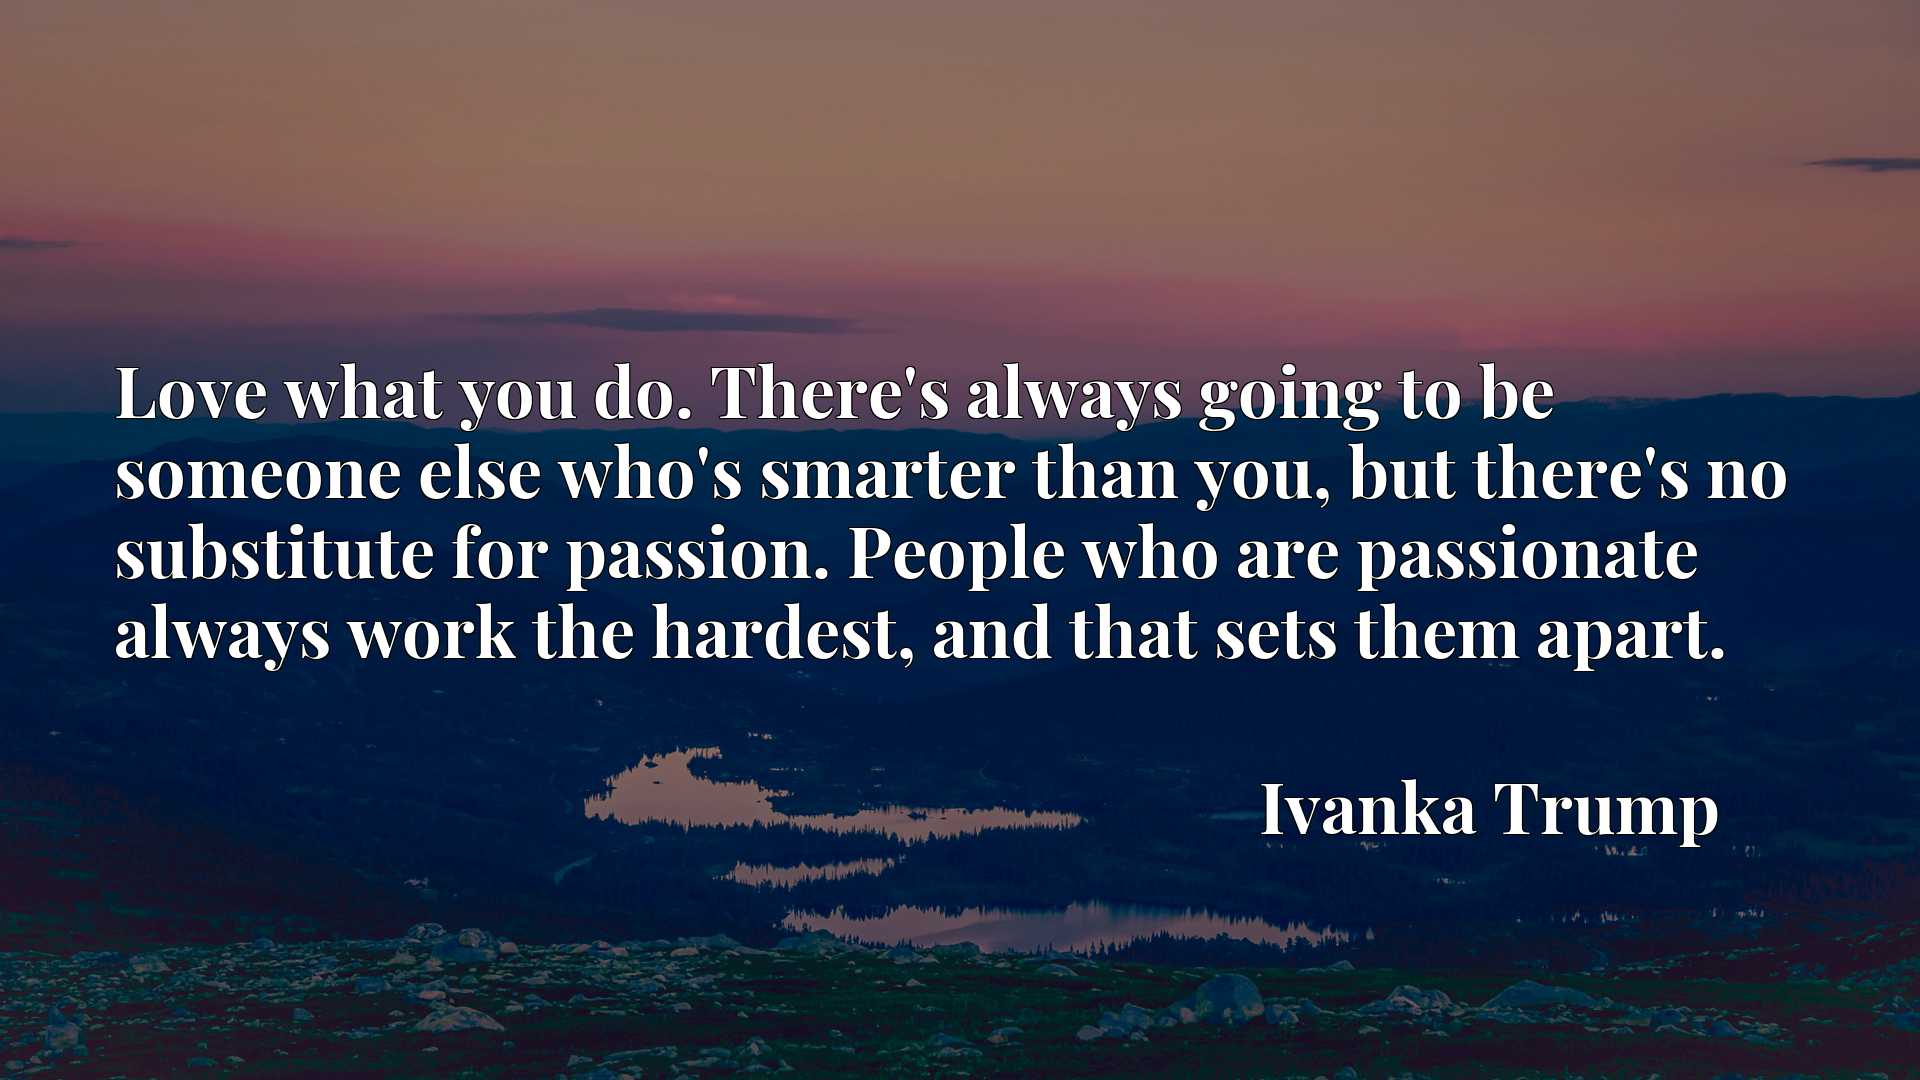 Quote Picture :Love what you do. There's always going to be someone else who's smarter than you, but there's no substitute for passion. People who are passionate always work the hardest, and that sets them apart.